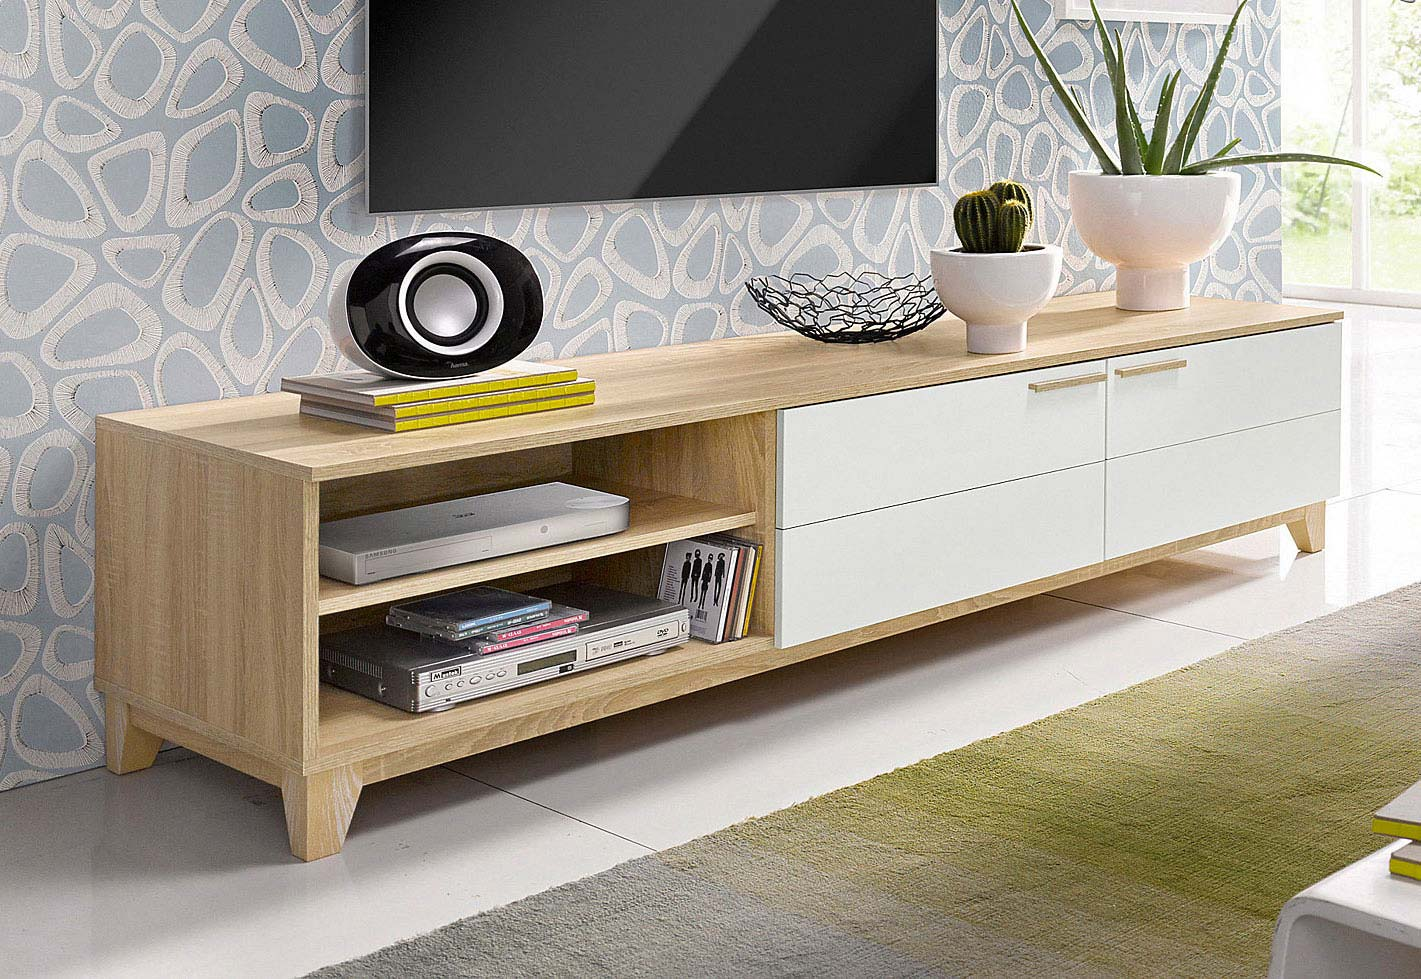 Meuble tv scandinave moderne - Meuble tv blanc scandinave ...